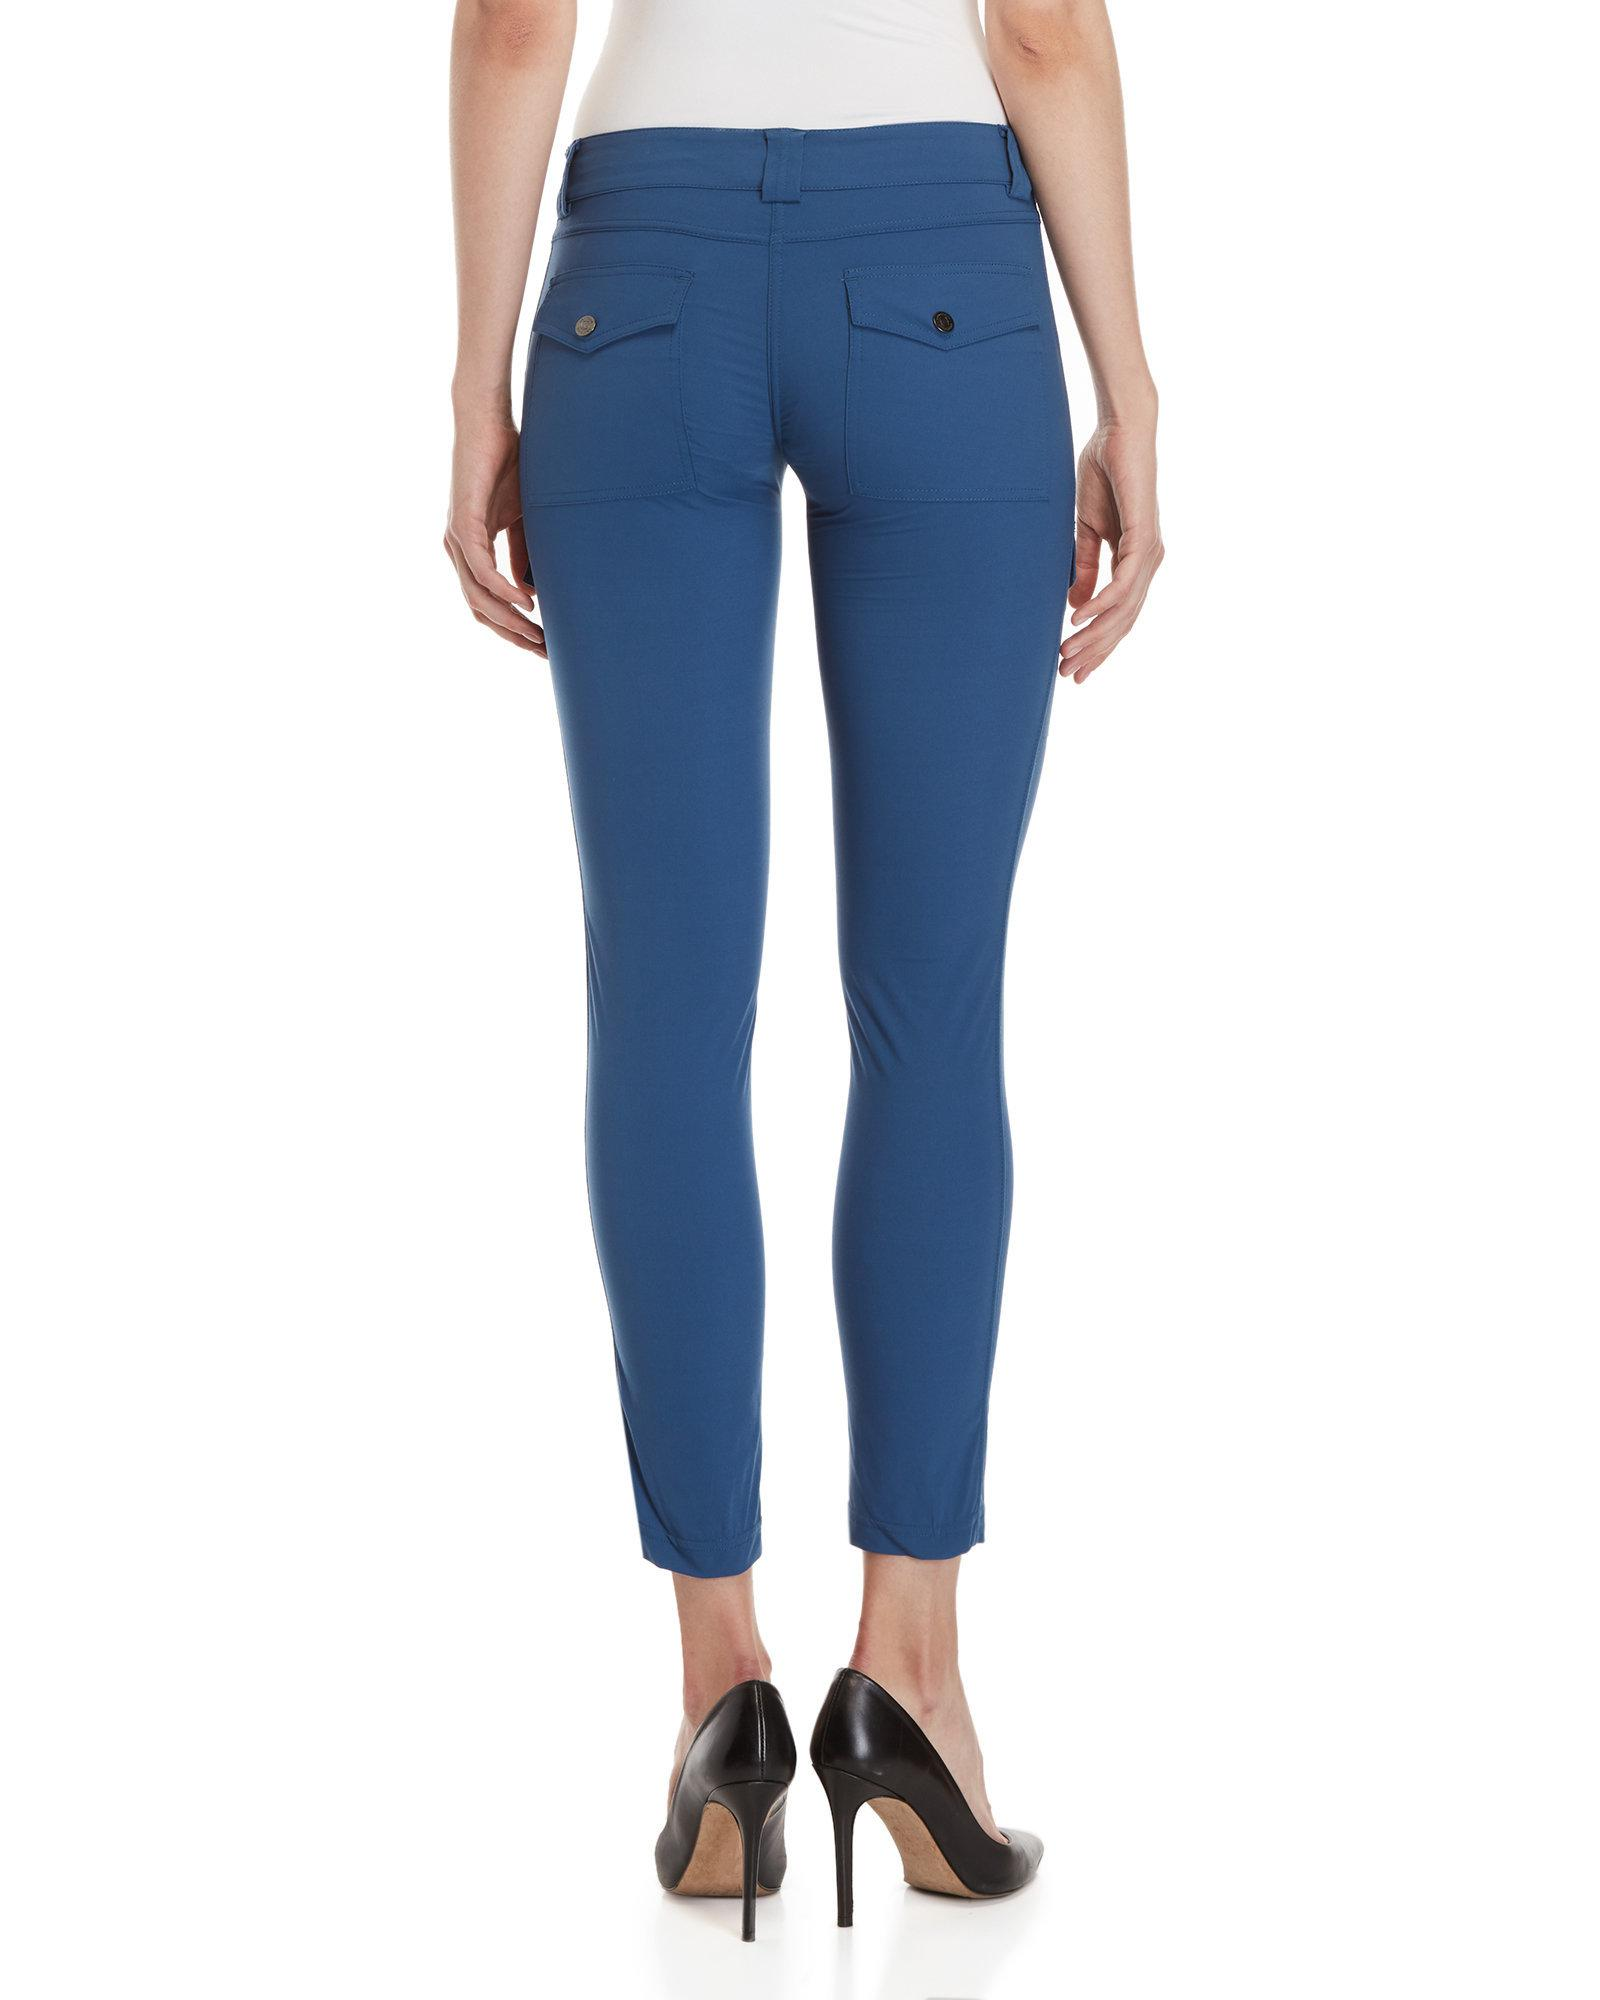 Lyst - Anatomie Kate Cargo Ankle Pants in Blue